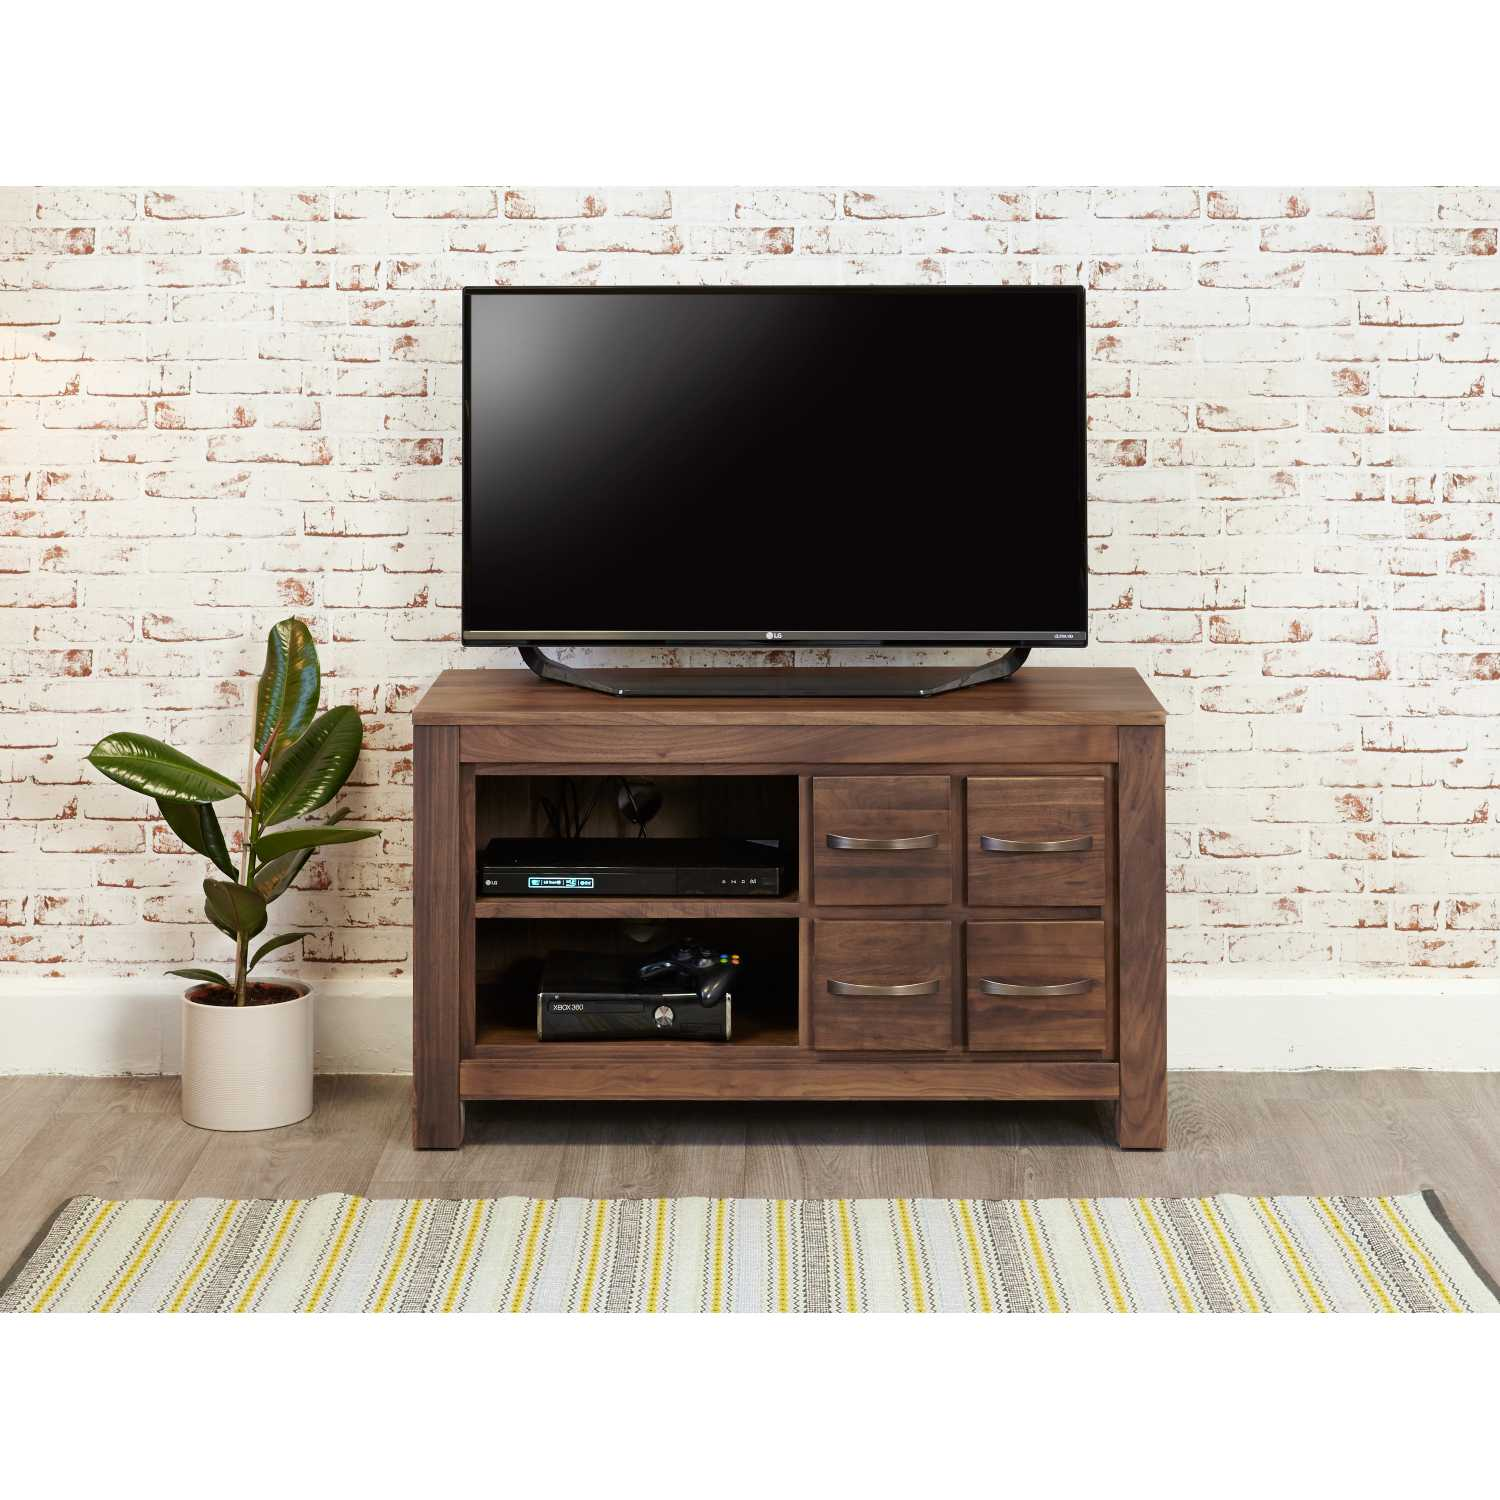 Walnut Wide Screen Television TV Media Cabinet 4 Drawers